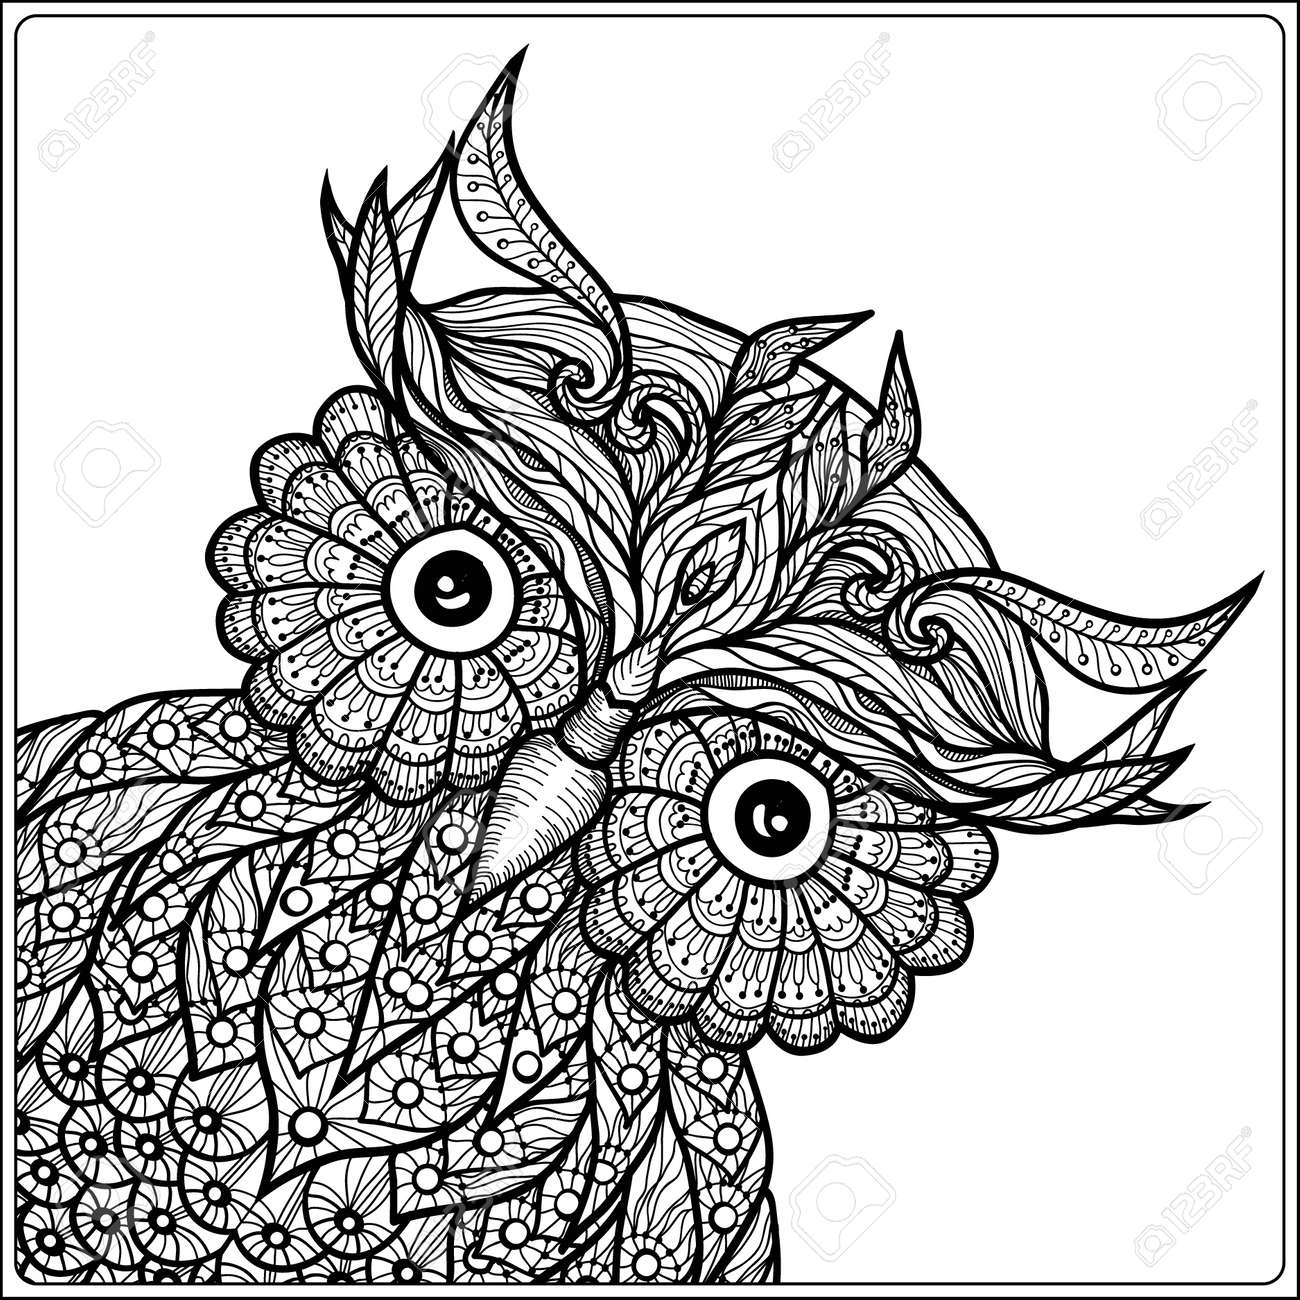 Coloring Book For Adult And Older Children Page With Cute Owl Outline Drawing